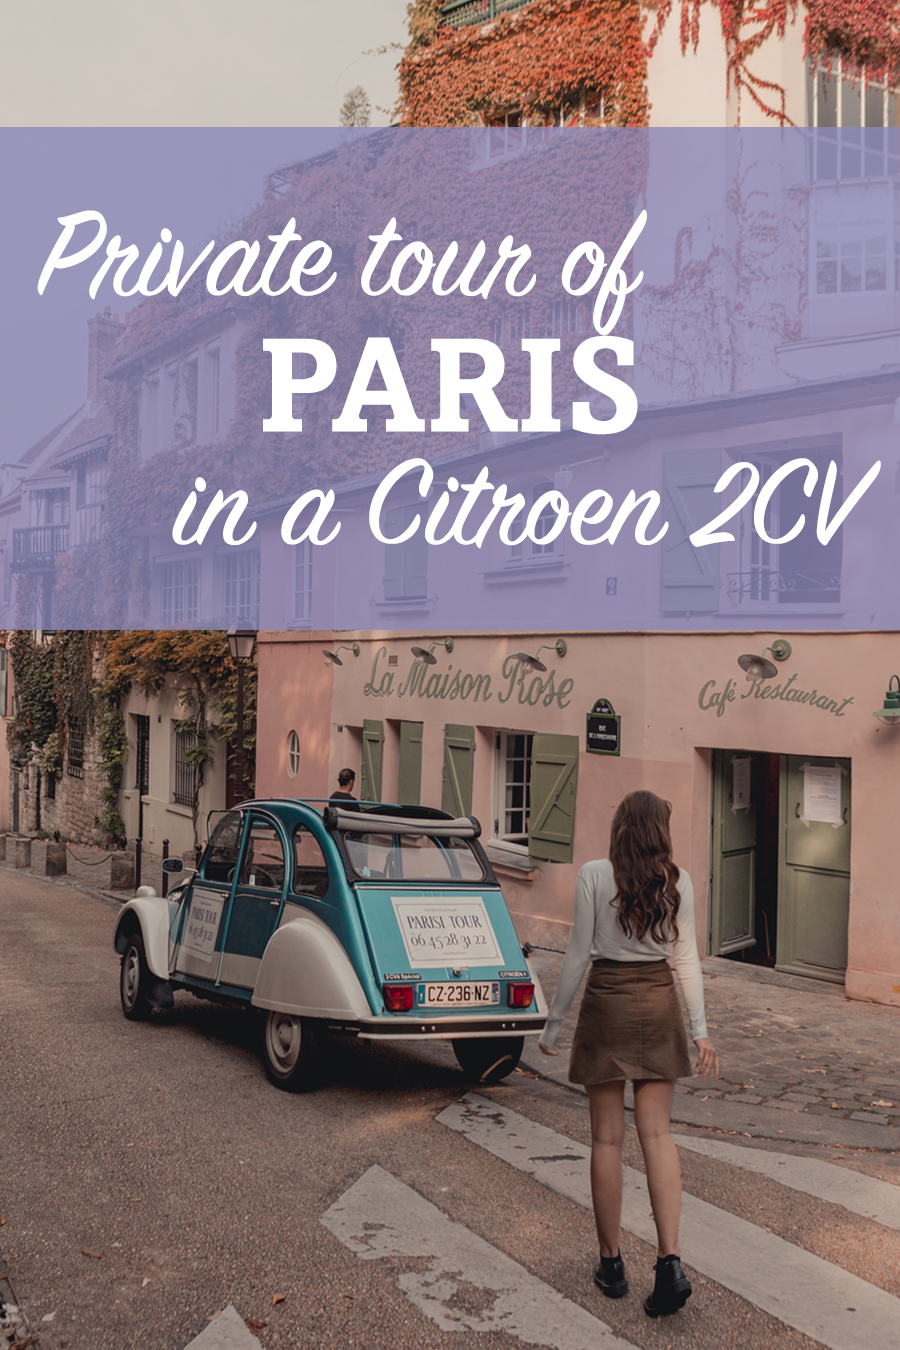 Tour Paris in a classic 2CV with Parisitour